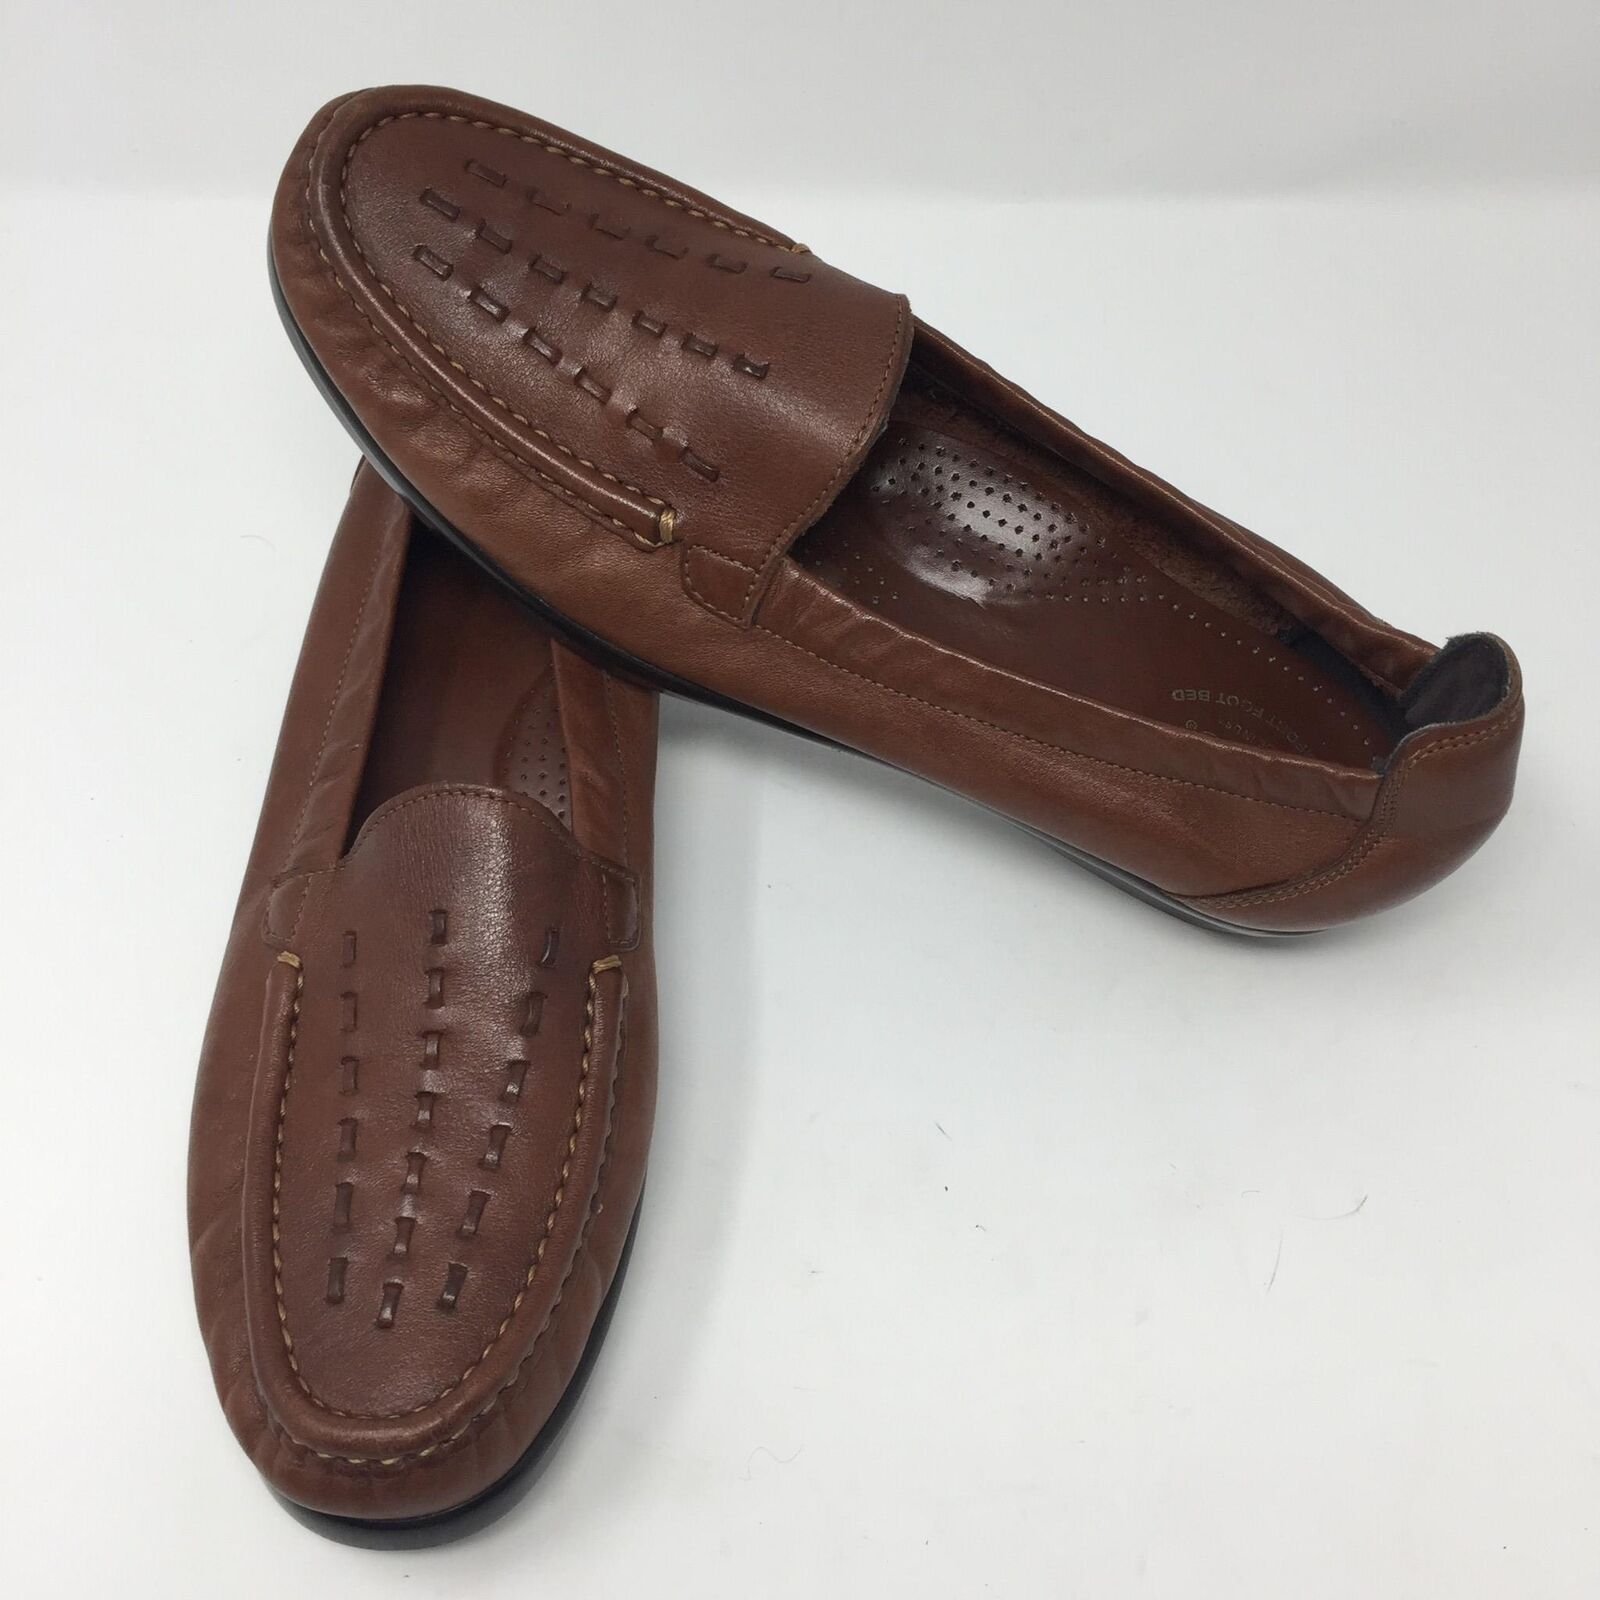 SAS Comfort shoes Brown Leather Slip On shoes Sz 10.5 N Narrow Loafers Boat